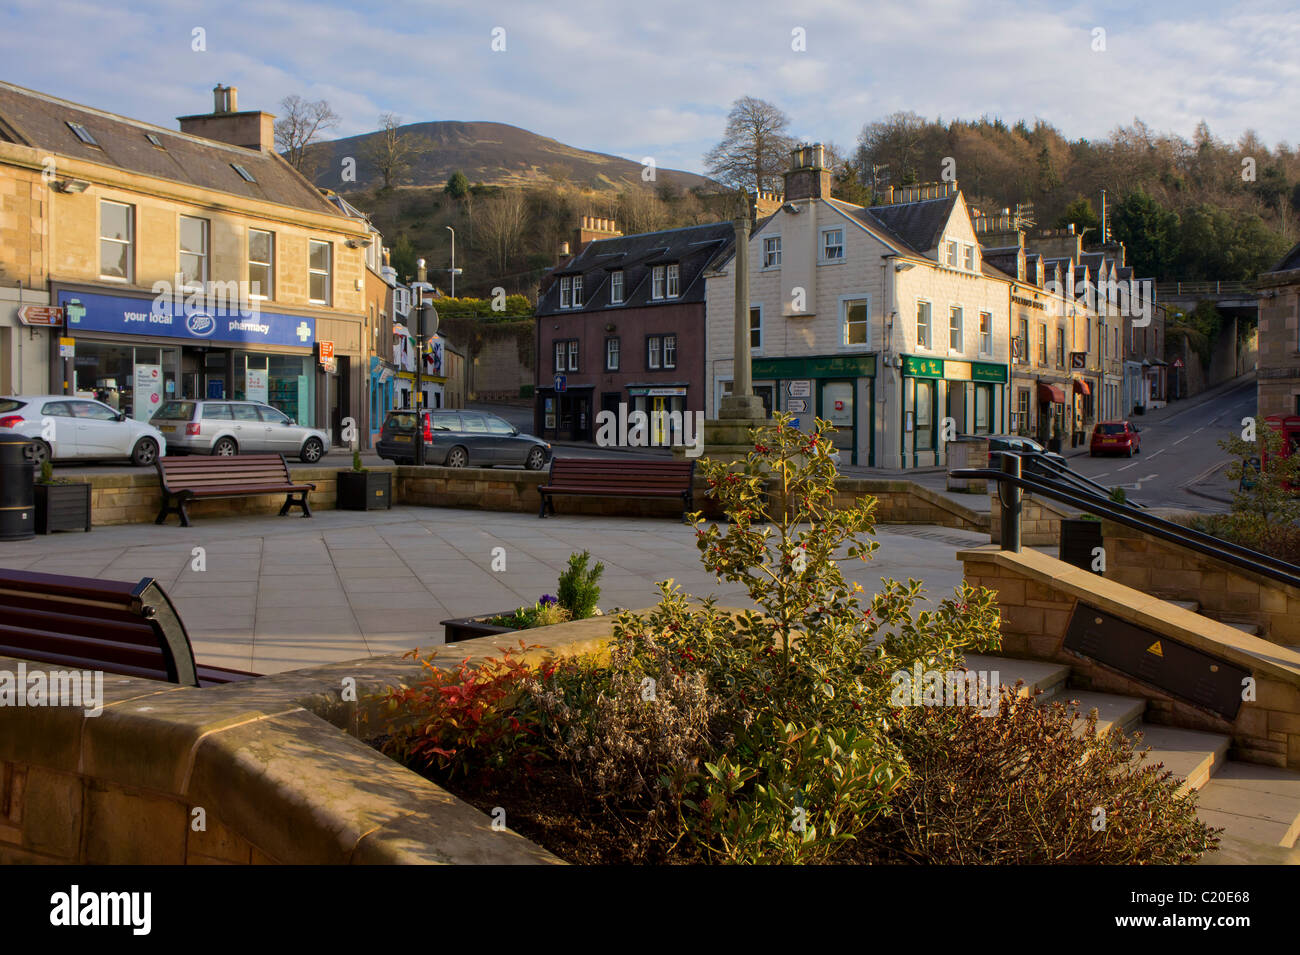 Melrose town centre, evening, Borders Region, Scotland - Stock Image